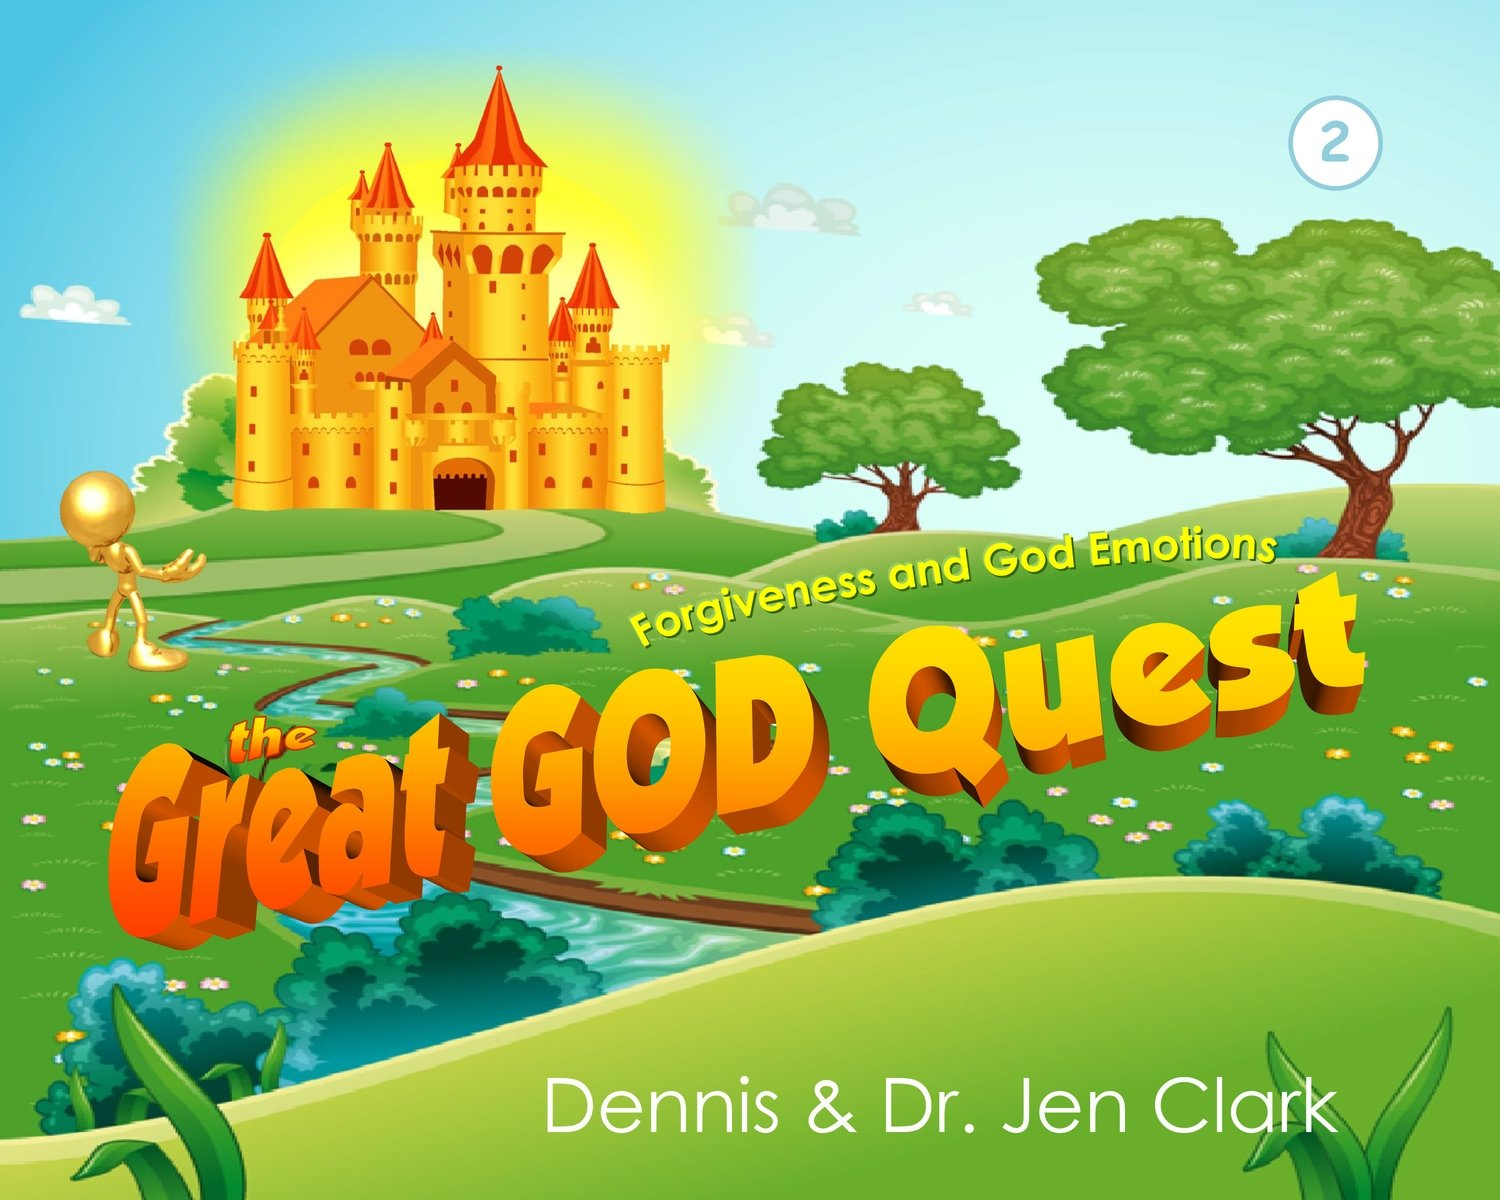 Great God Quest Book 2